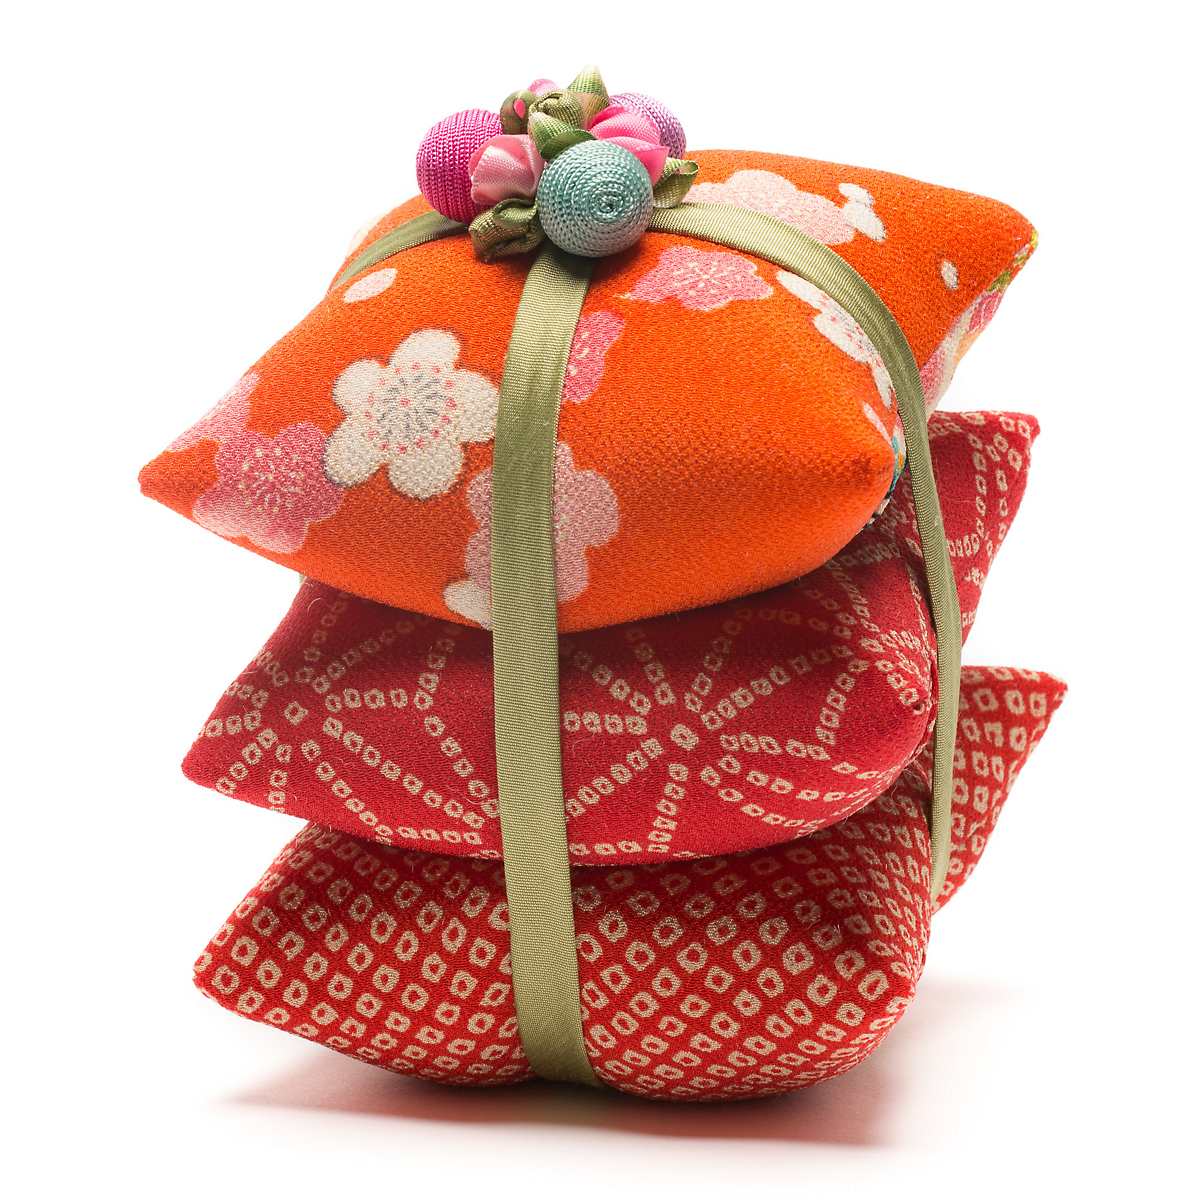 Irene Hirose Japanese Fabric Sachet Triplet, Orange